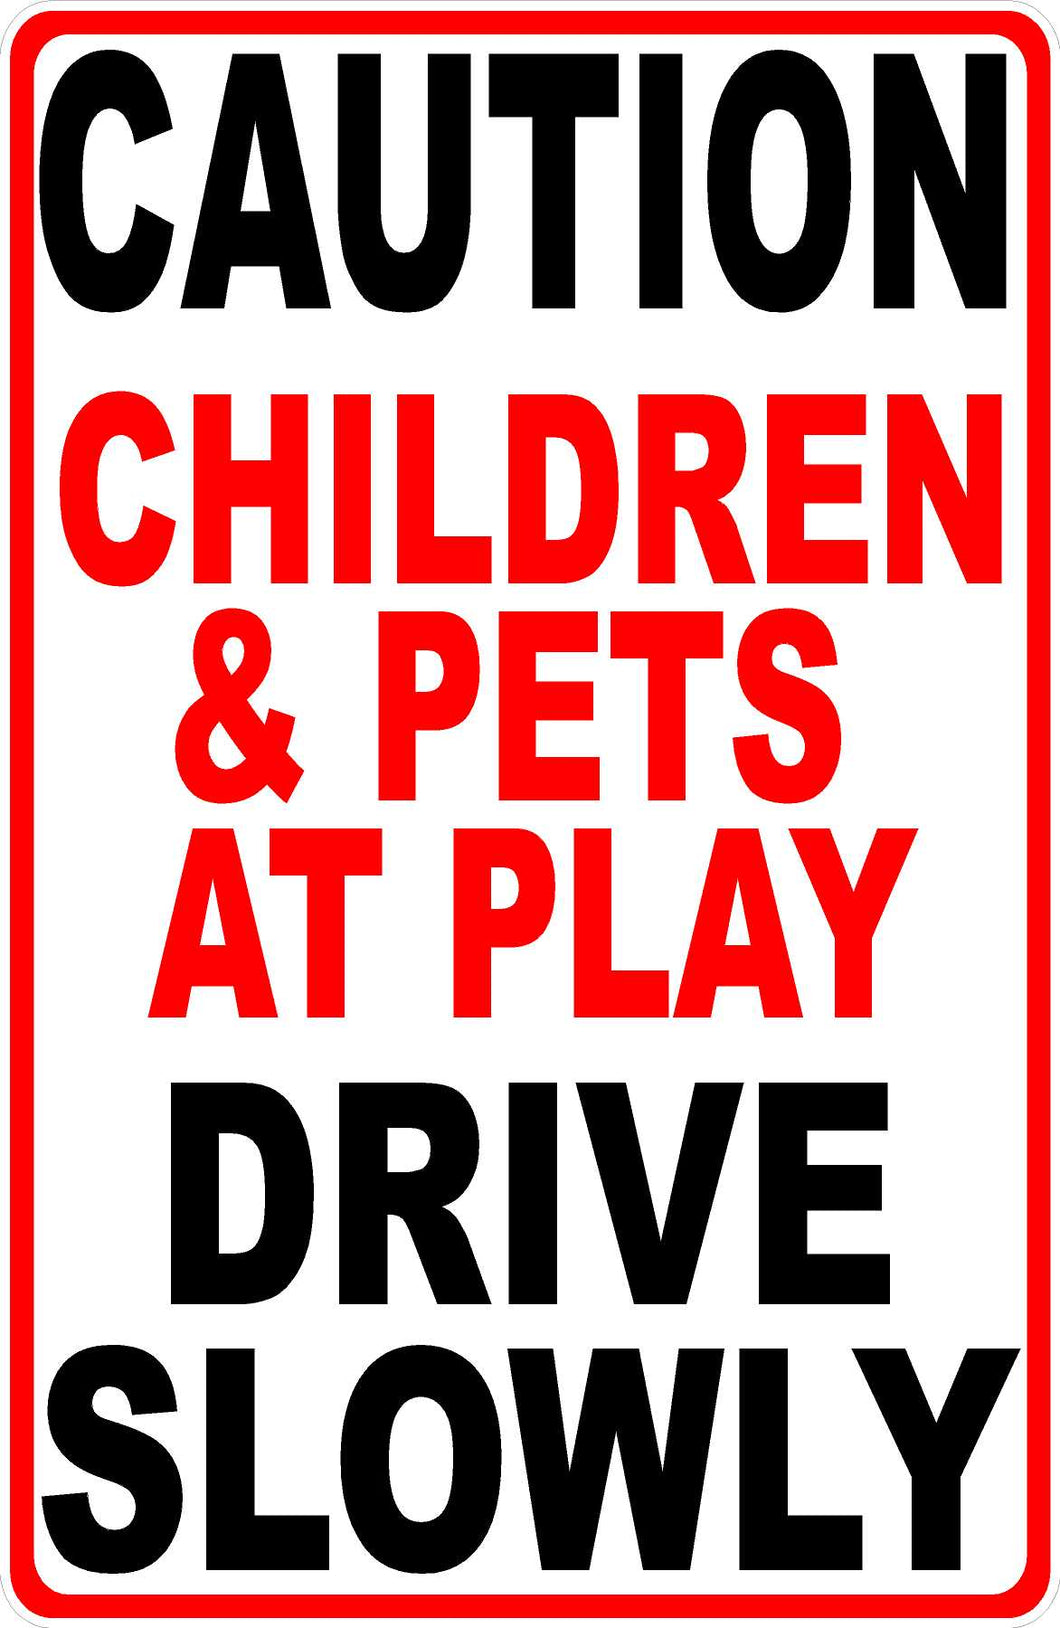 Children at Play Drive Slowly Sign